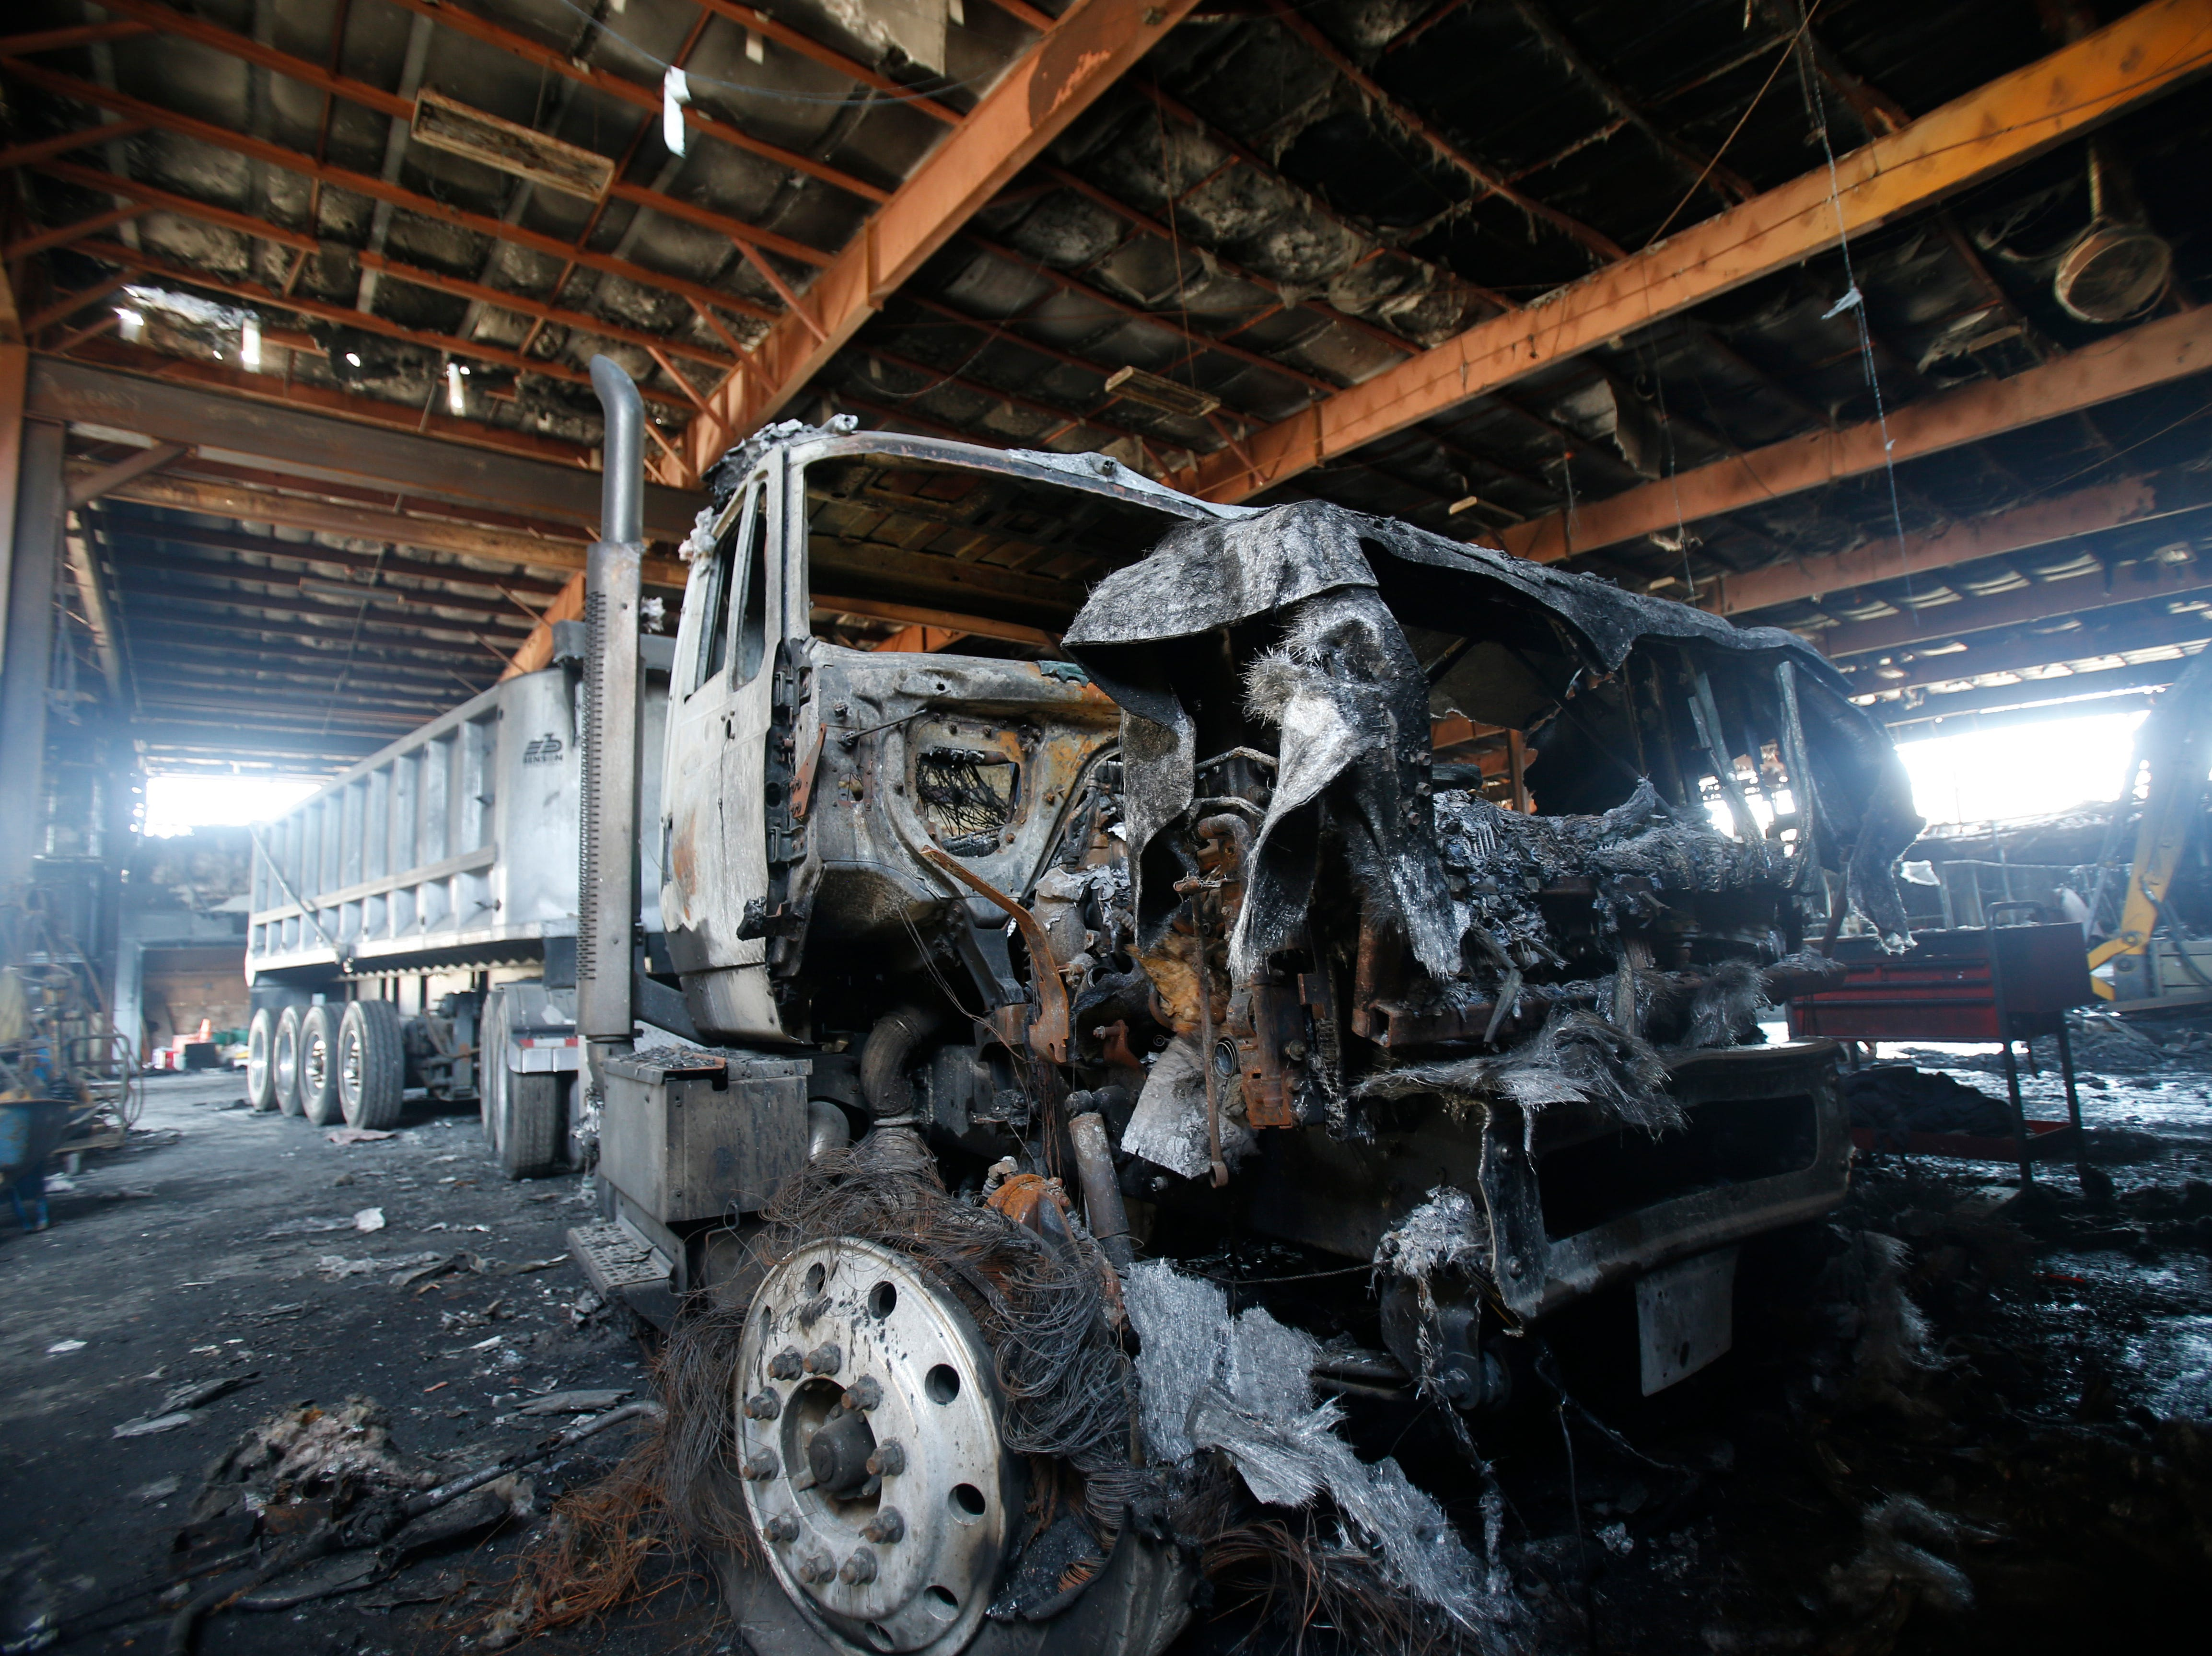 A fire damaged tractor trailer at Gleason Incorporated's building in the Town of Poughkeepsie on April 17, 2019. A fire in March damaged the building beyond repair.  The Gleason family has recently been allowed to enter the structure to assess the damage and discover what was destroyed.